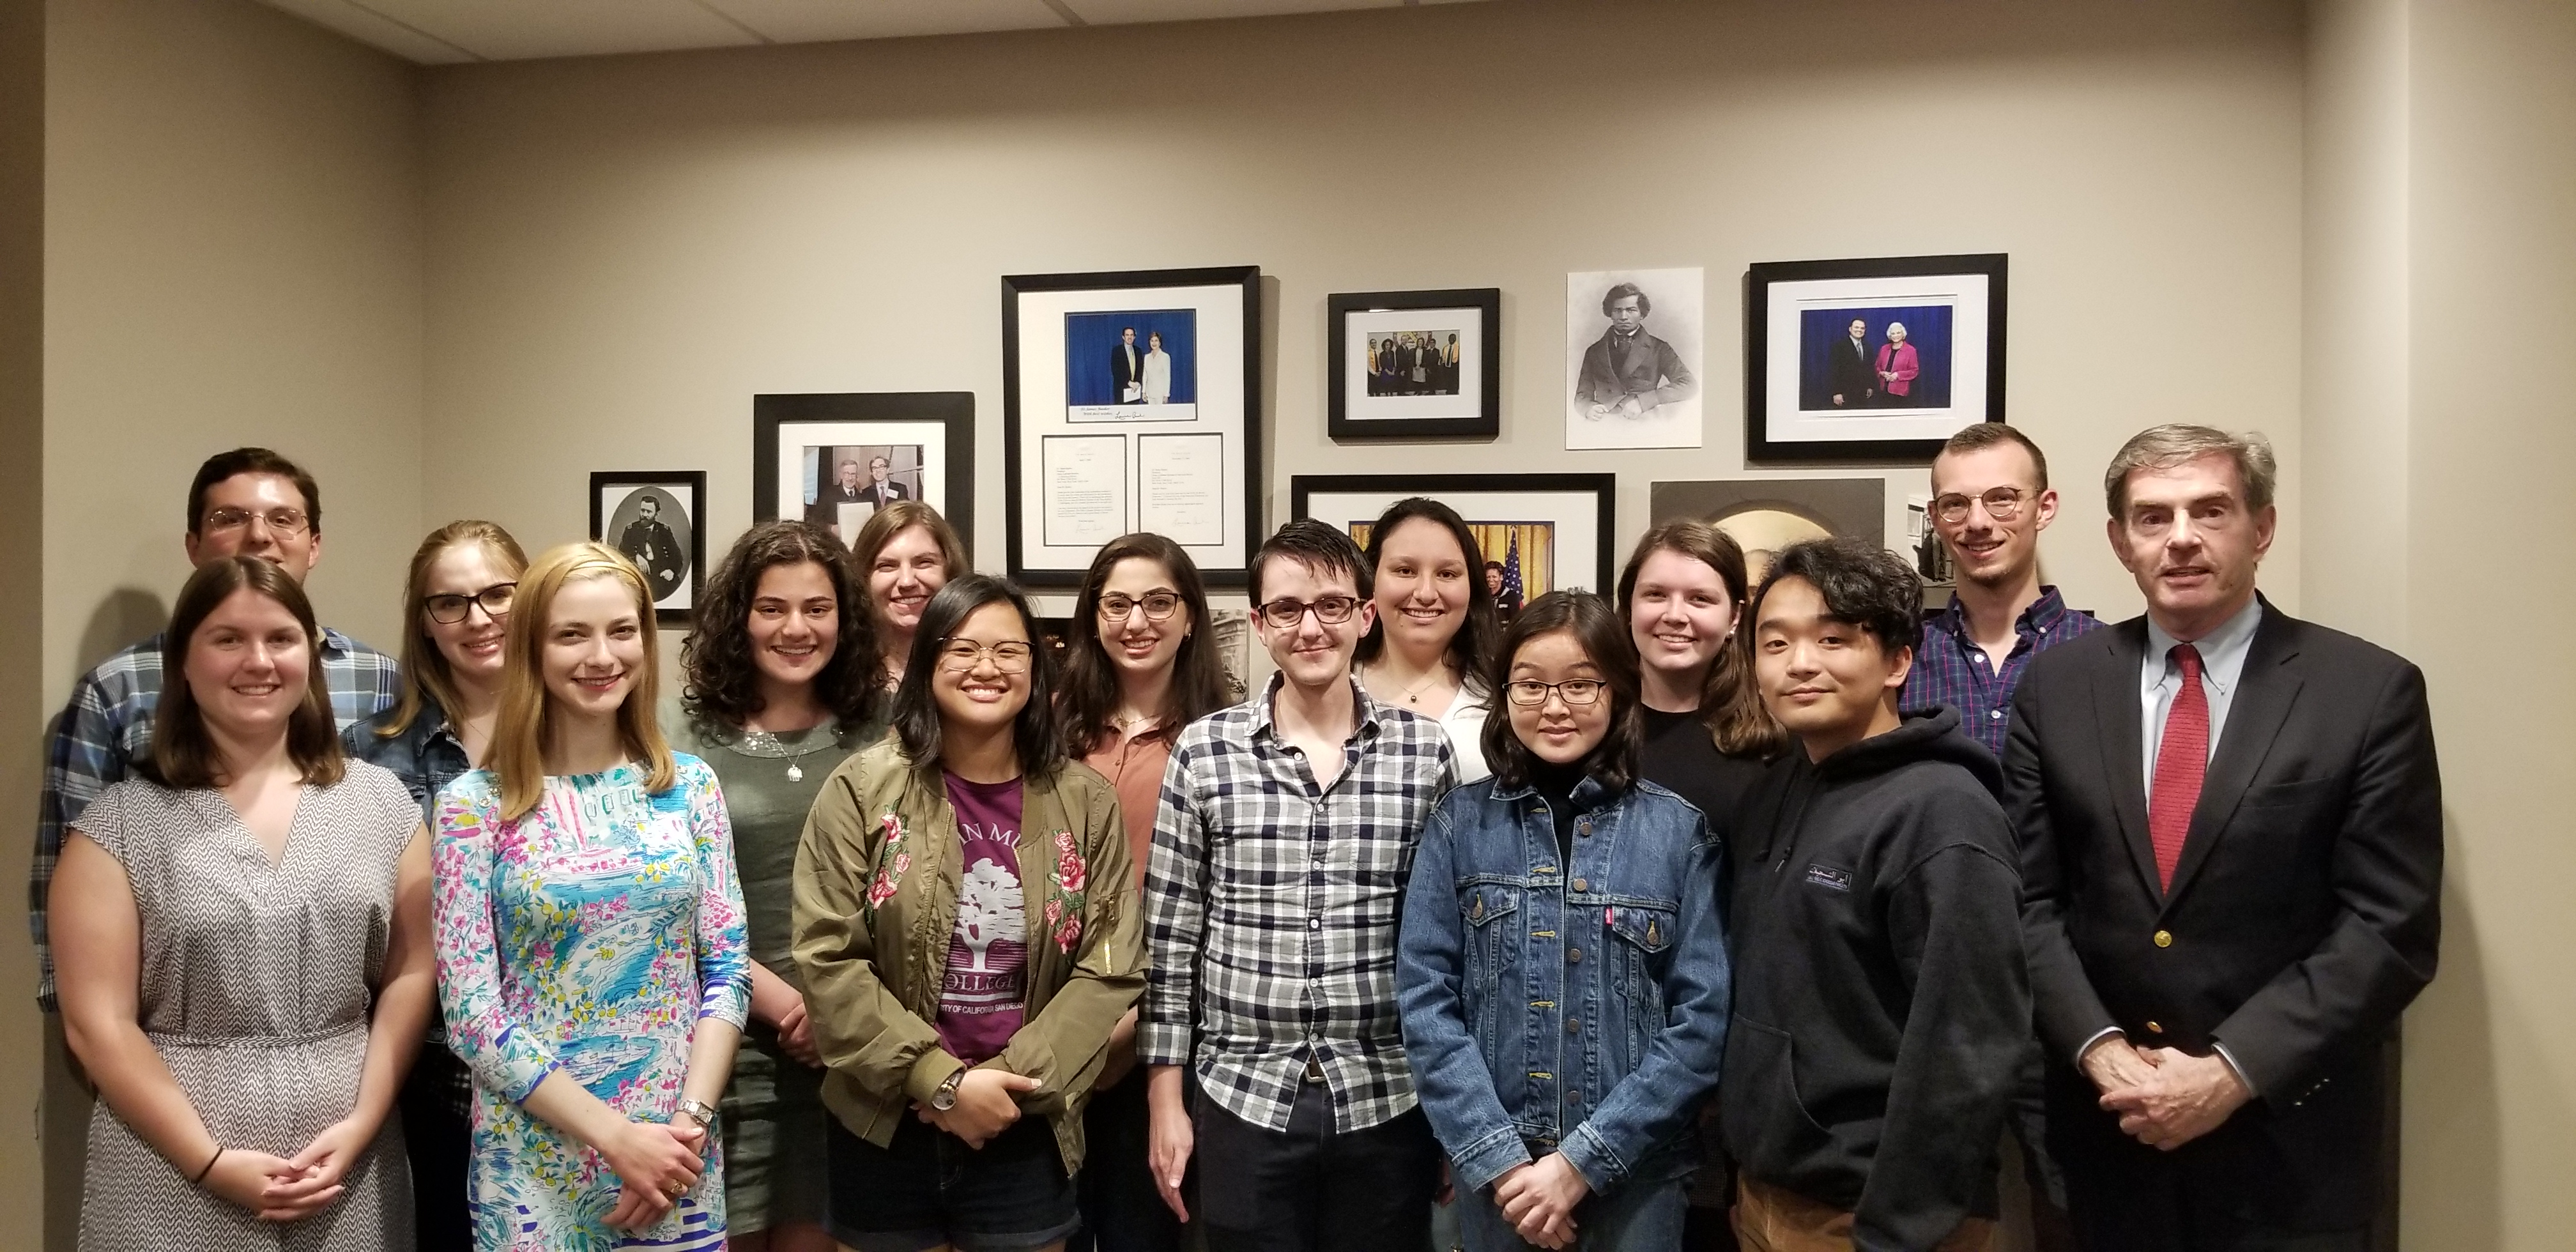 The Gilder Lehrman History Scholars of 2019 with Jim Basker.